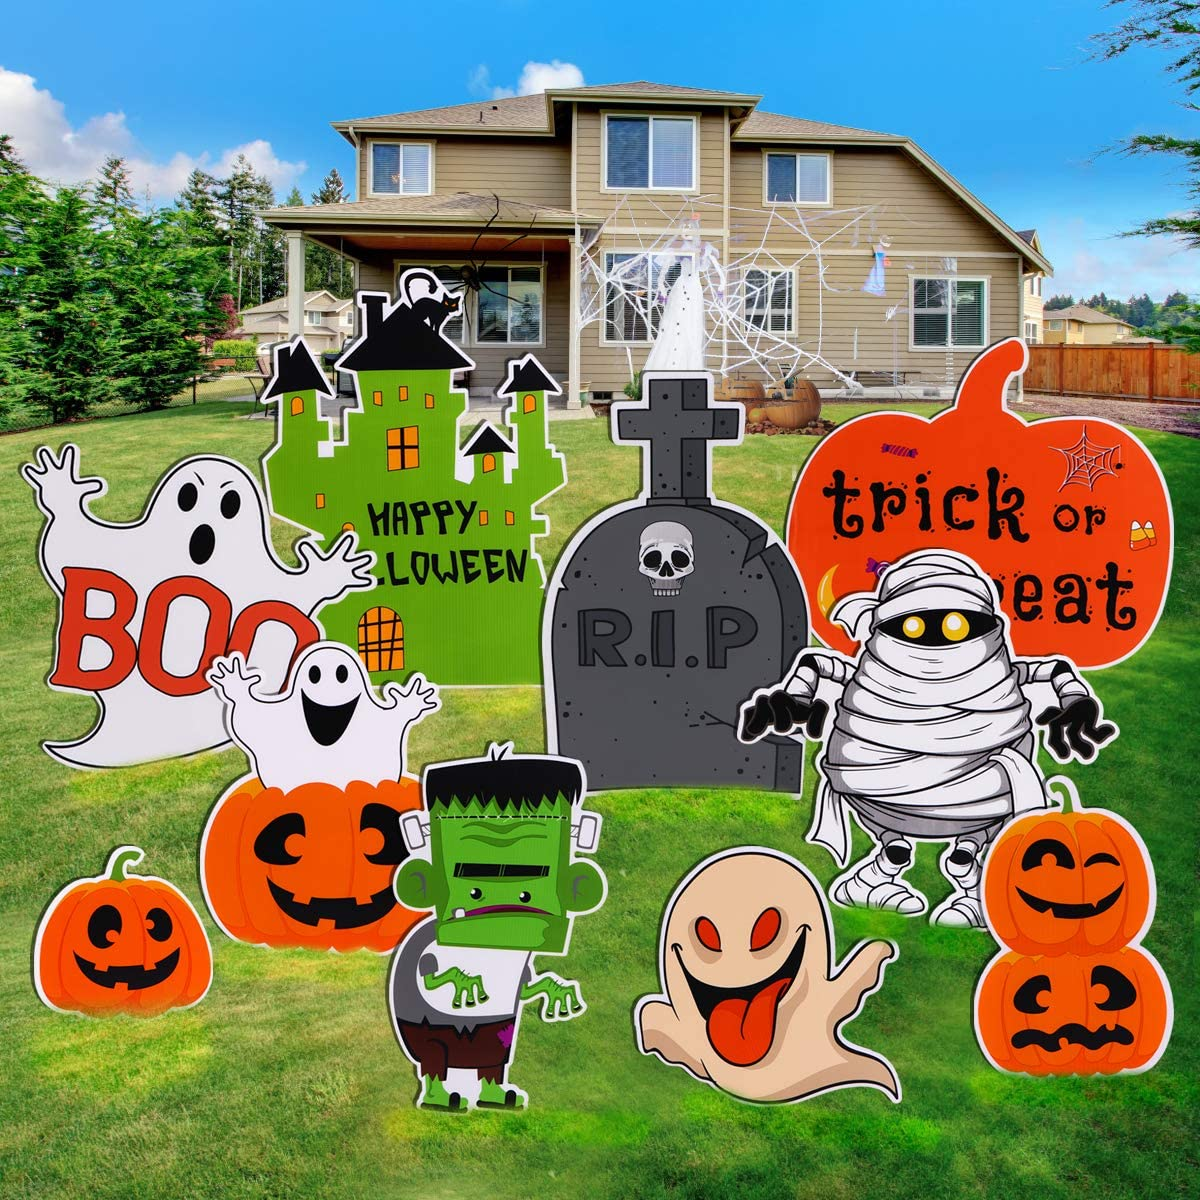 Aobuy 10pcs Halloween Decorations Outdoor-Extra Large Cute Pumpkin Ghost Decoration,Ghost Corrugate Yard Stake Signs and Trick or Treat Party Plastic Décor